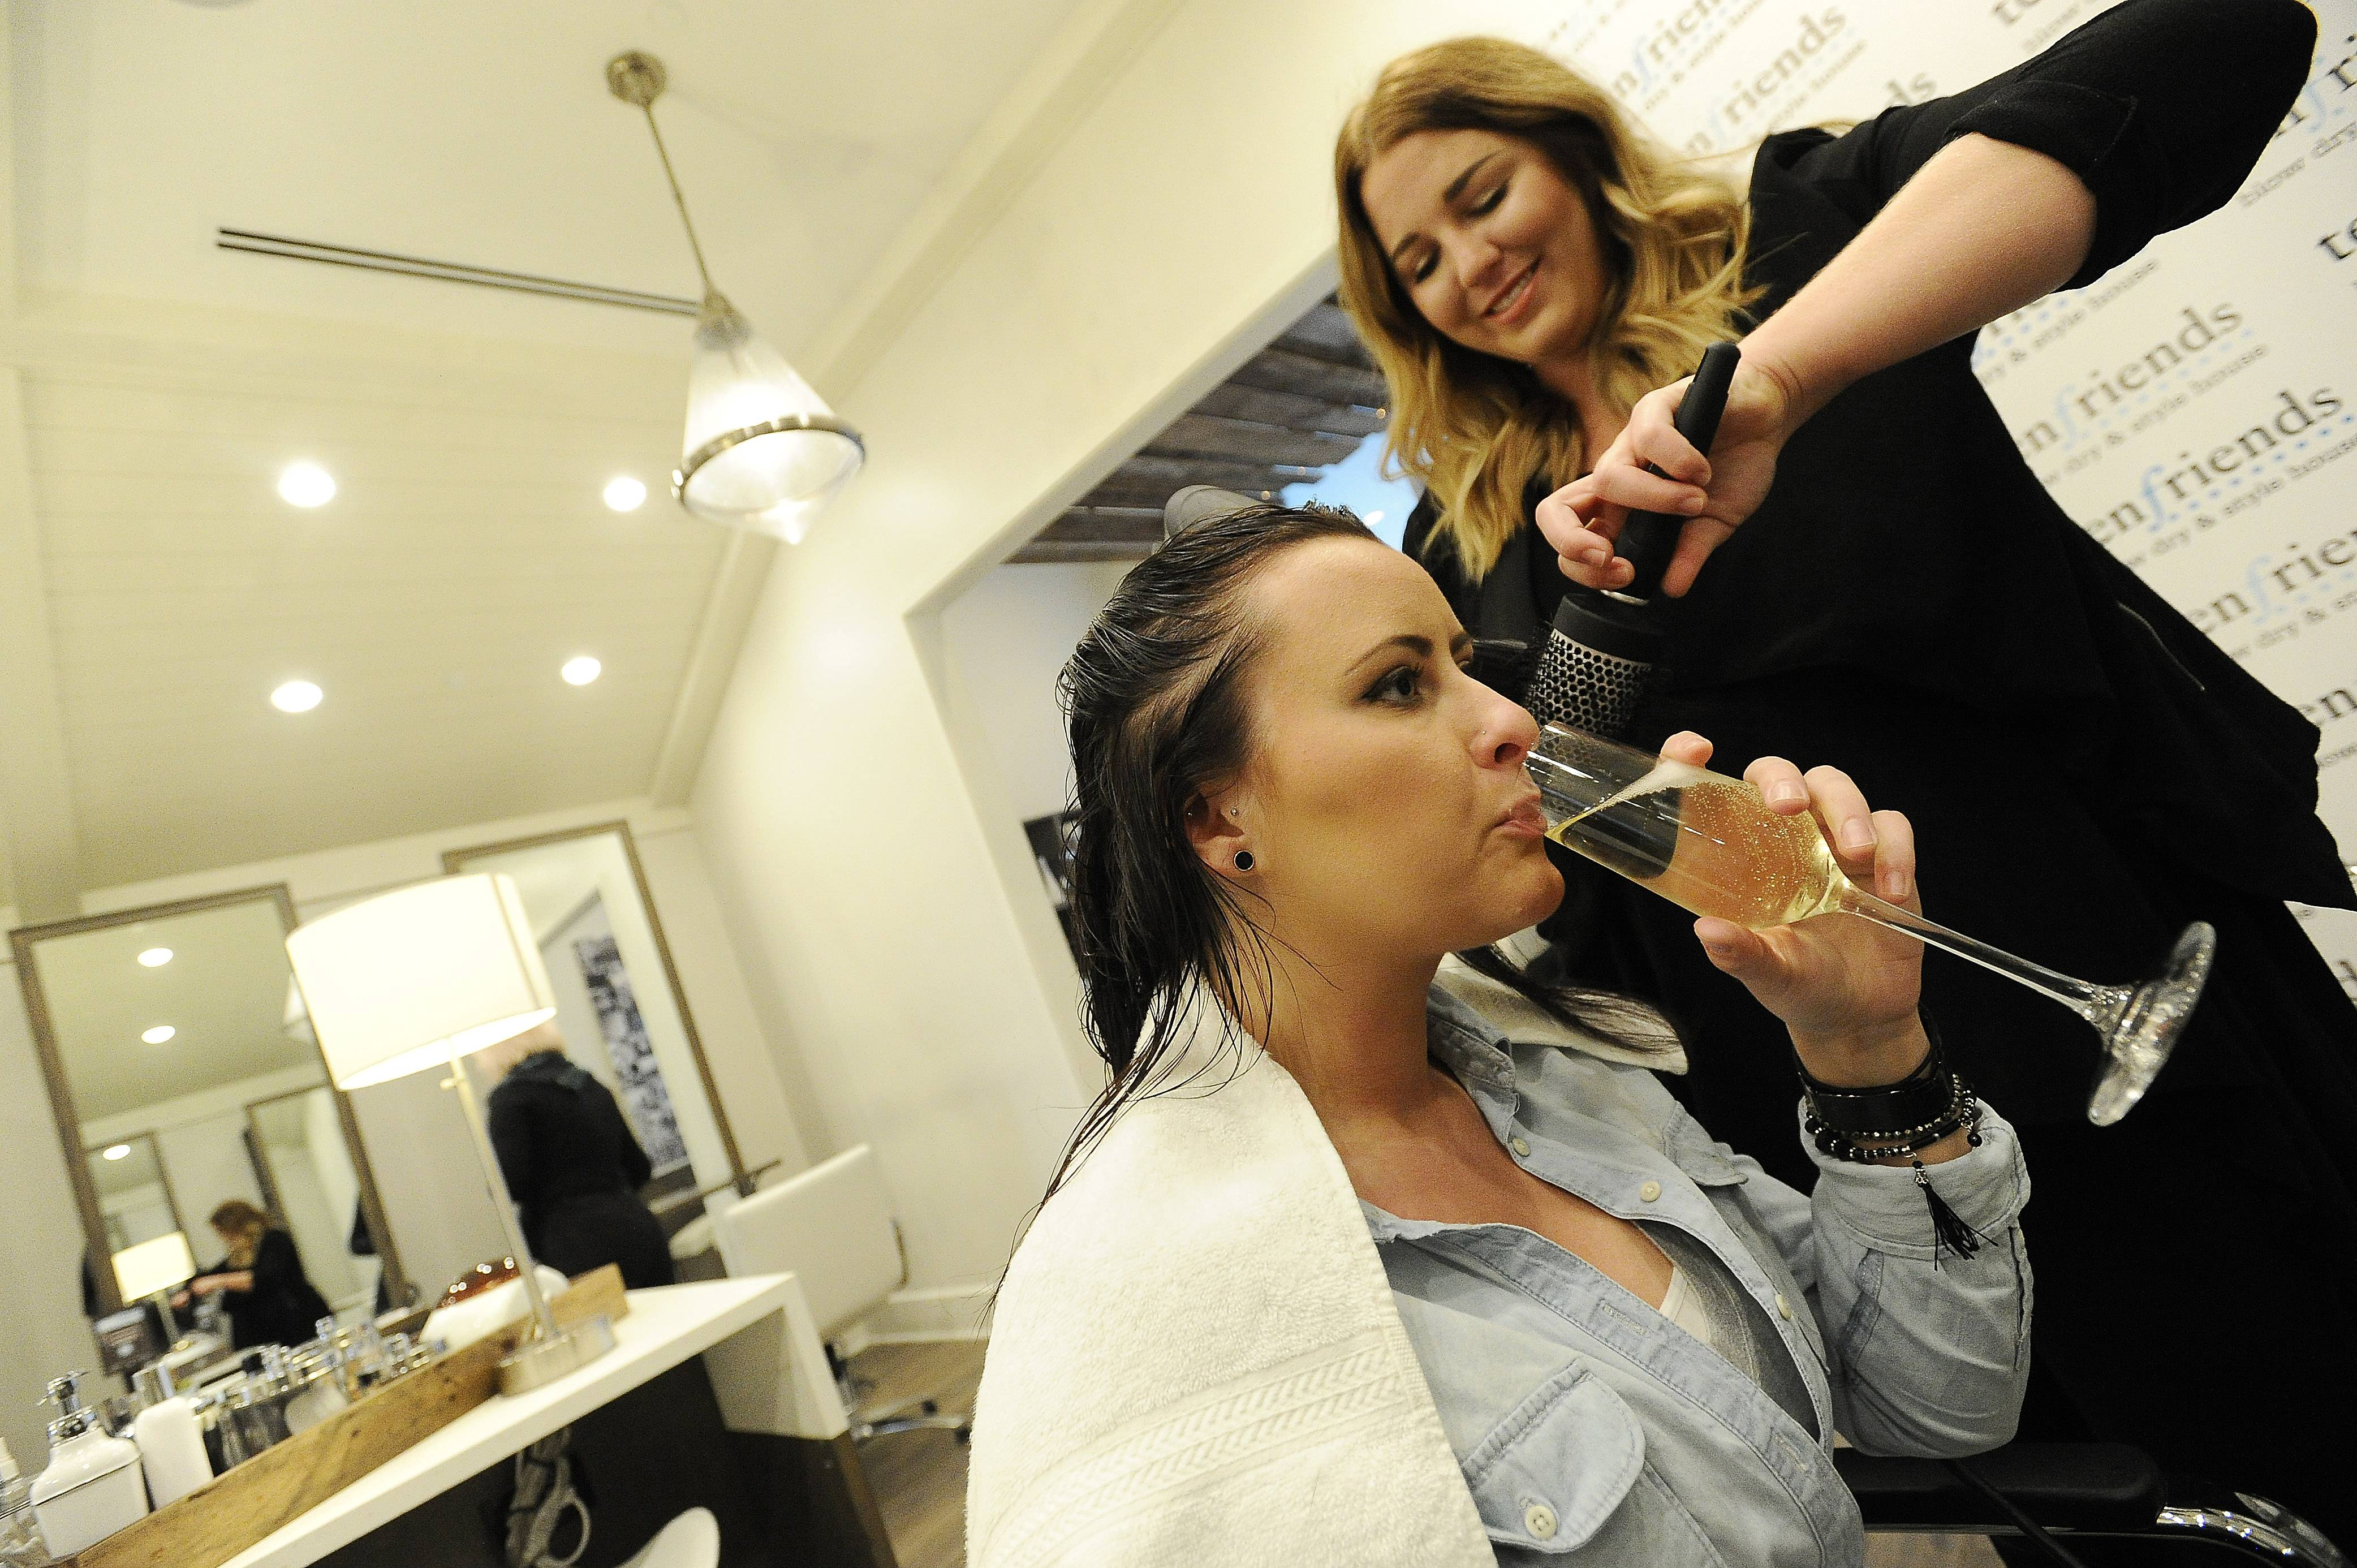 Deer Park's 10 Friends stylist Kelsey Pizur, 26, of Wauconda works on the hair of Amanda Bogard, 24, of Wauconda as she drinks a glass of champagne. The patrons have a choice of champagne or beer.